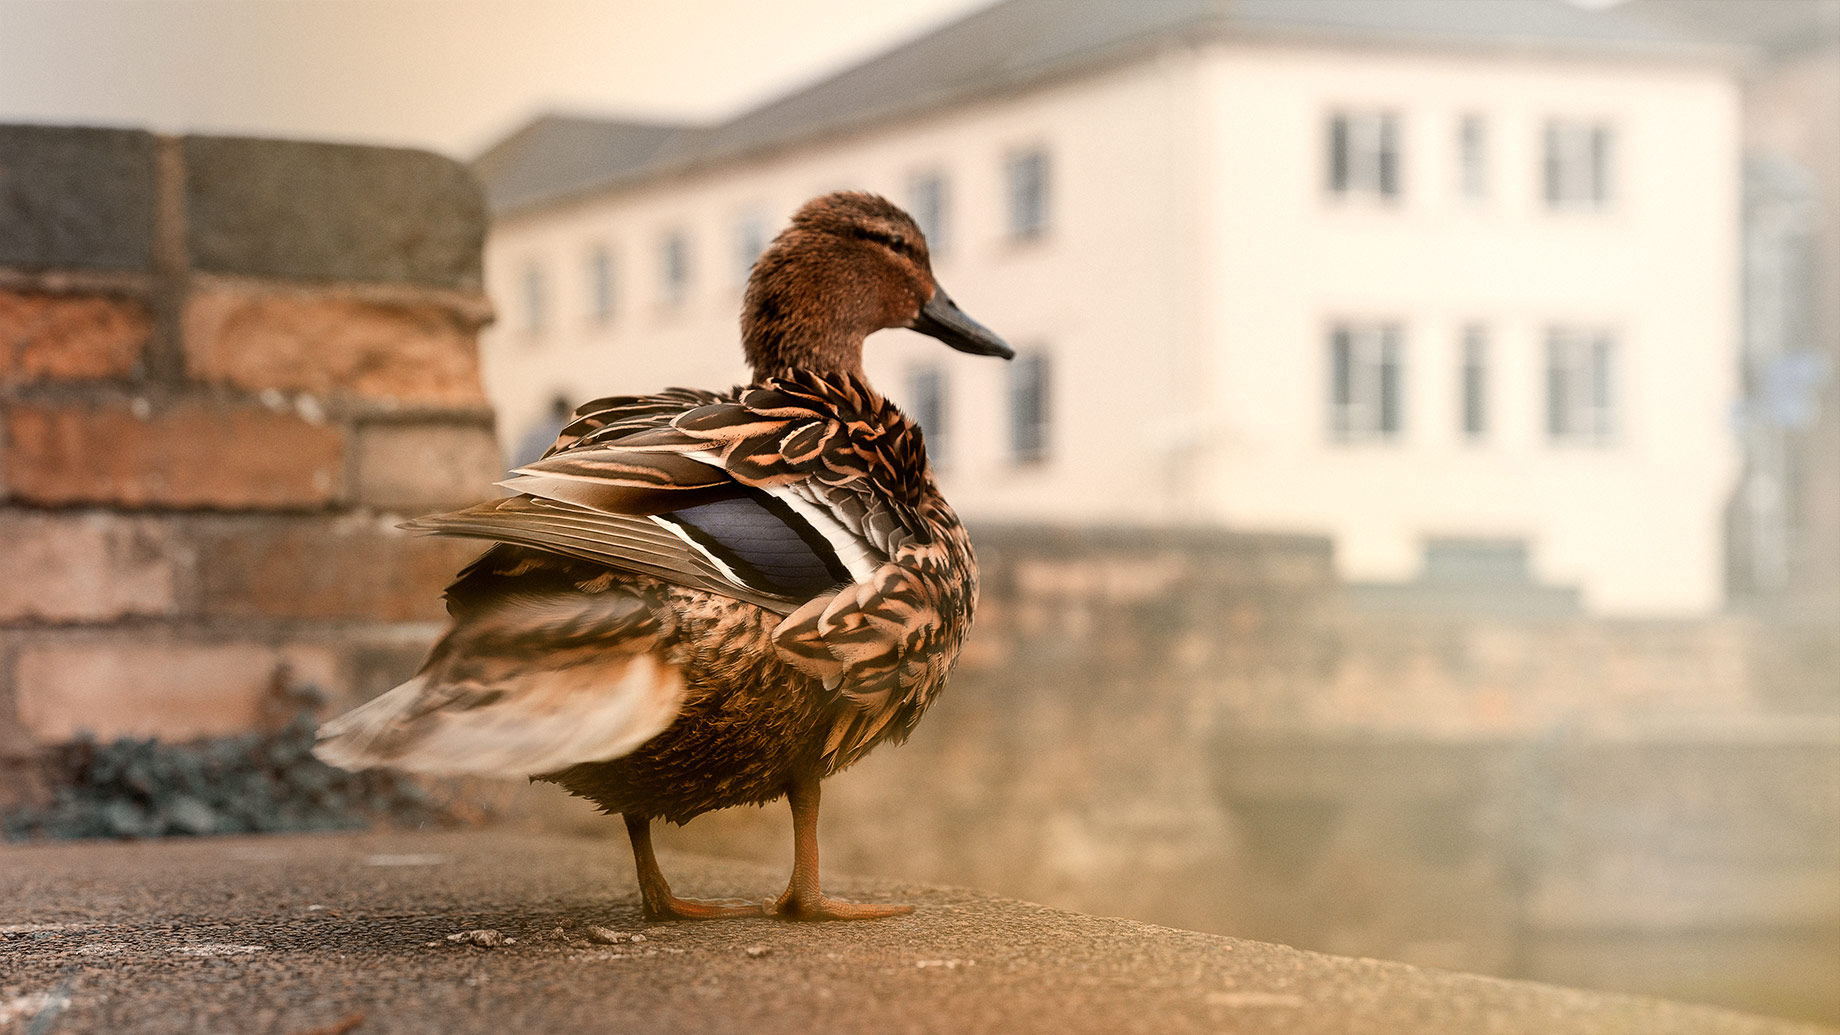 Good Boy Wolf Photographer, filmic landscape,  Cambridge, large male duck stood on a wall